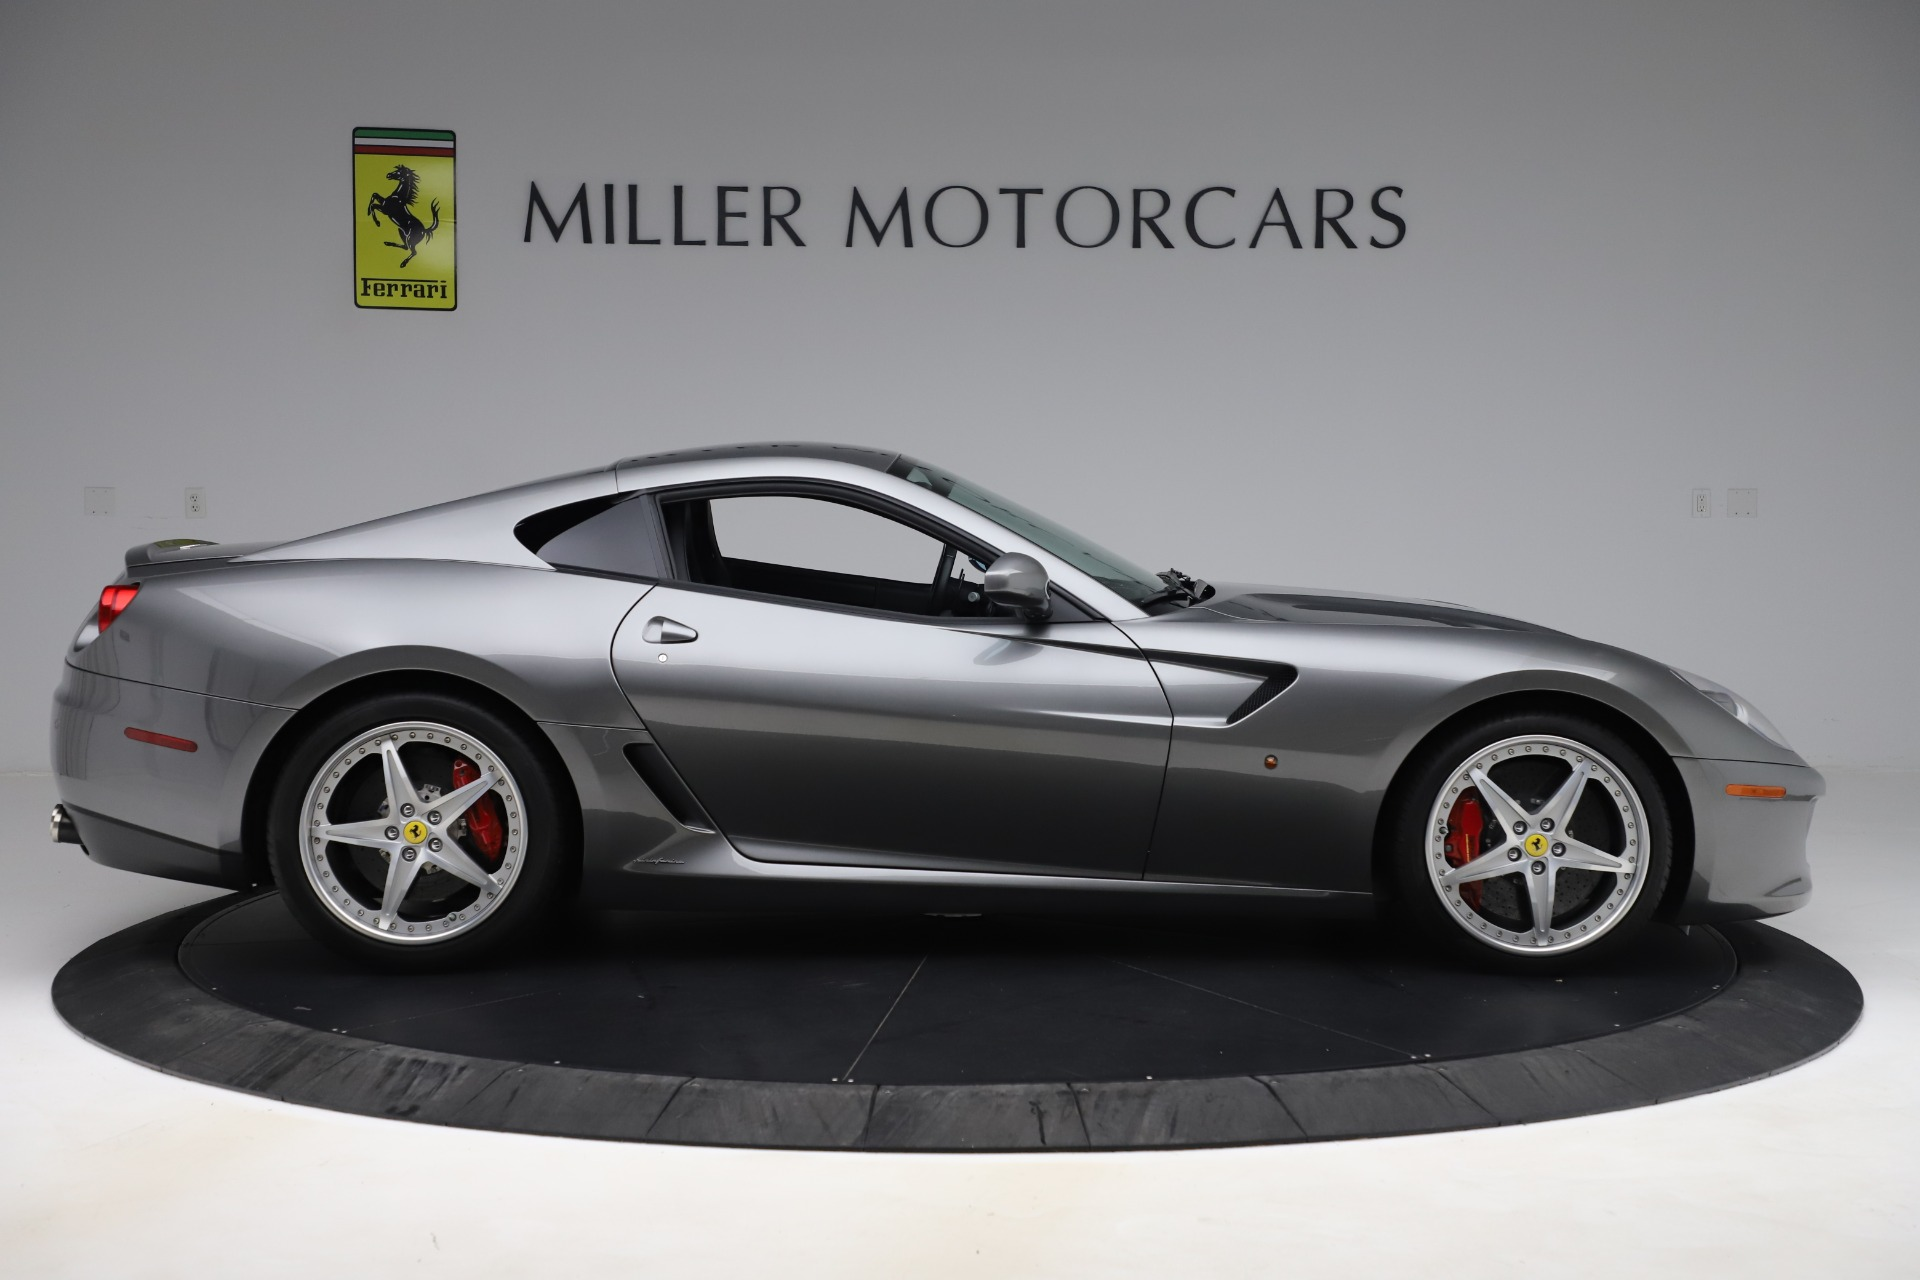 Used 2010 Ferrari 599 GTB Fiorano HGTE For Sale In Westport, CT 3544_p9